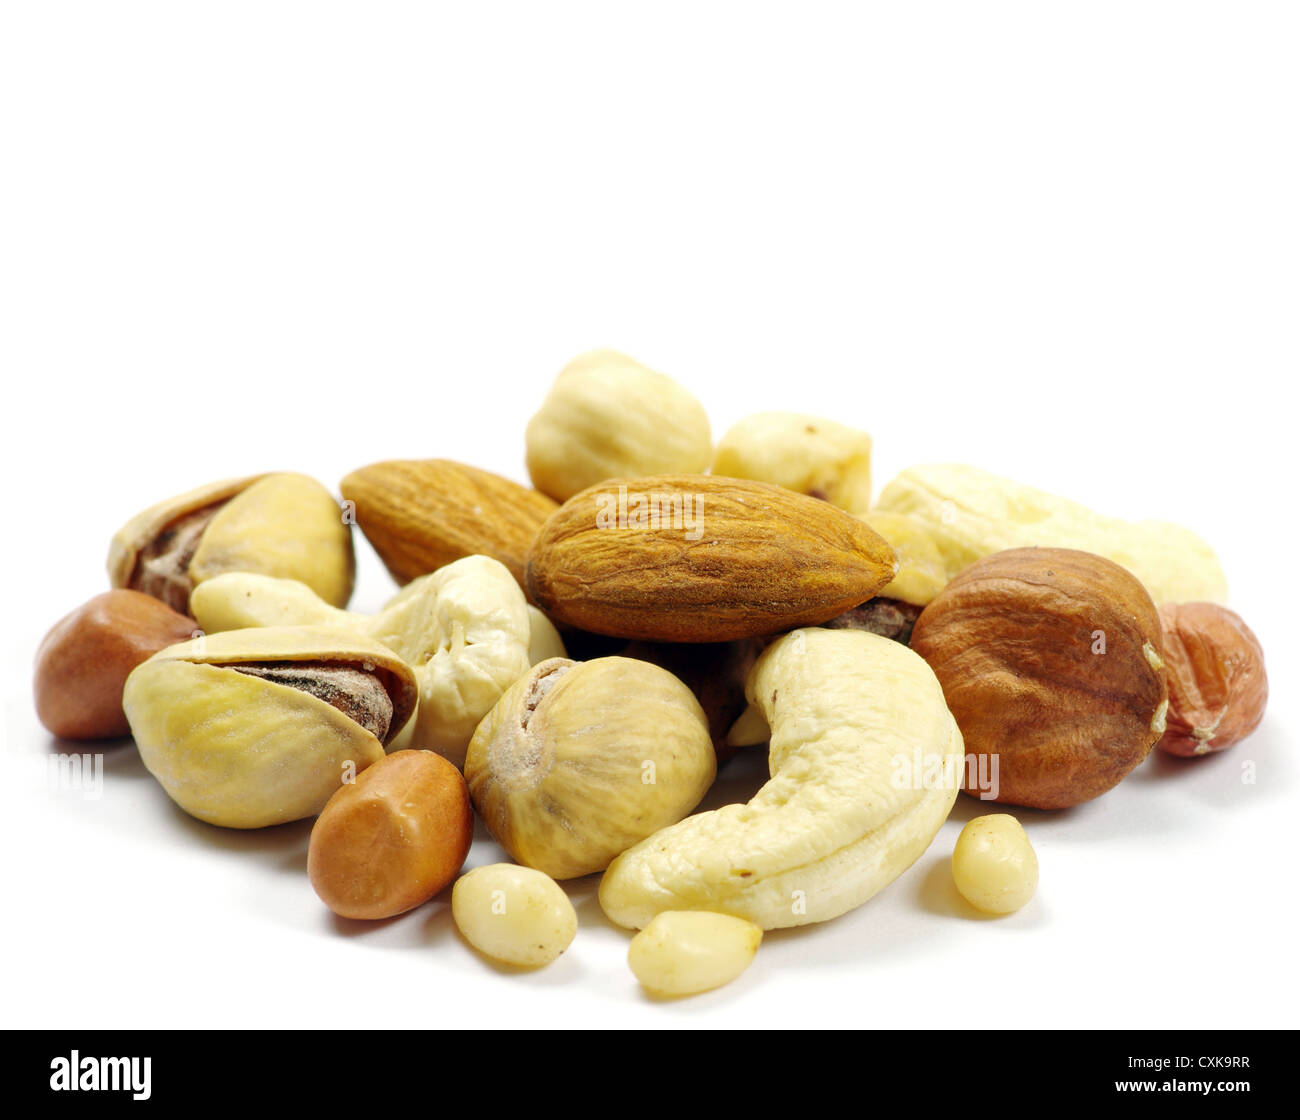 Assorted mixed nuts on white background - Stock Image